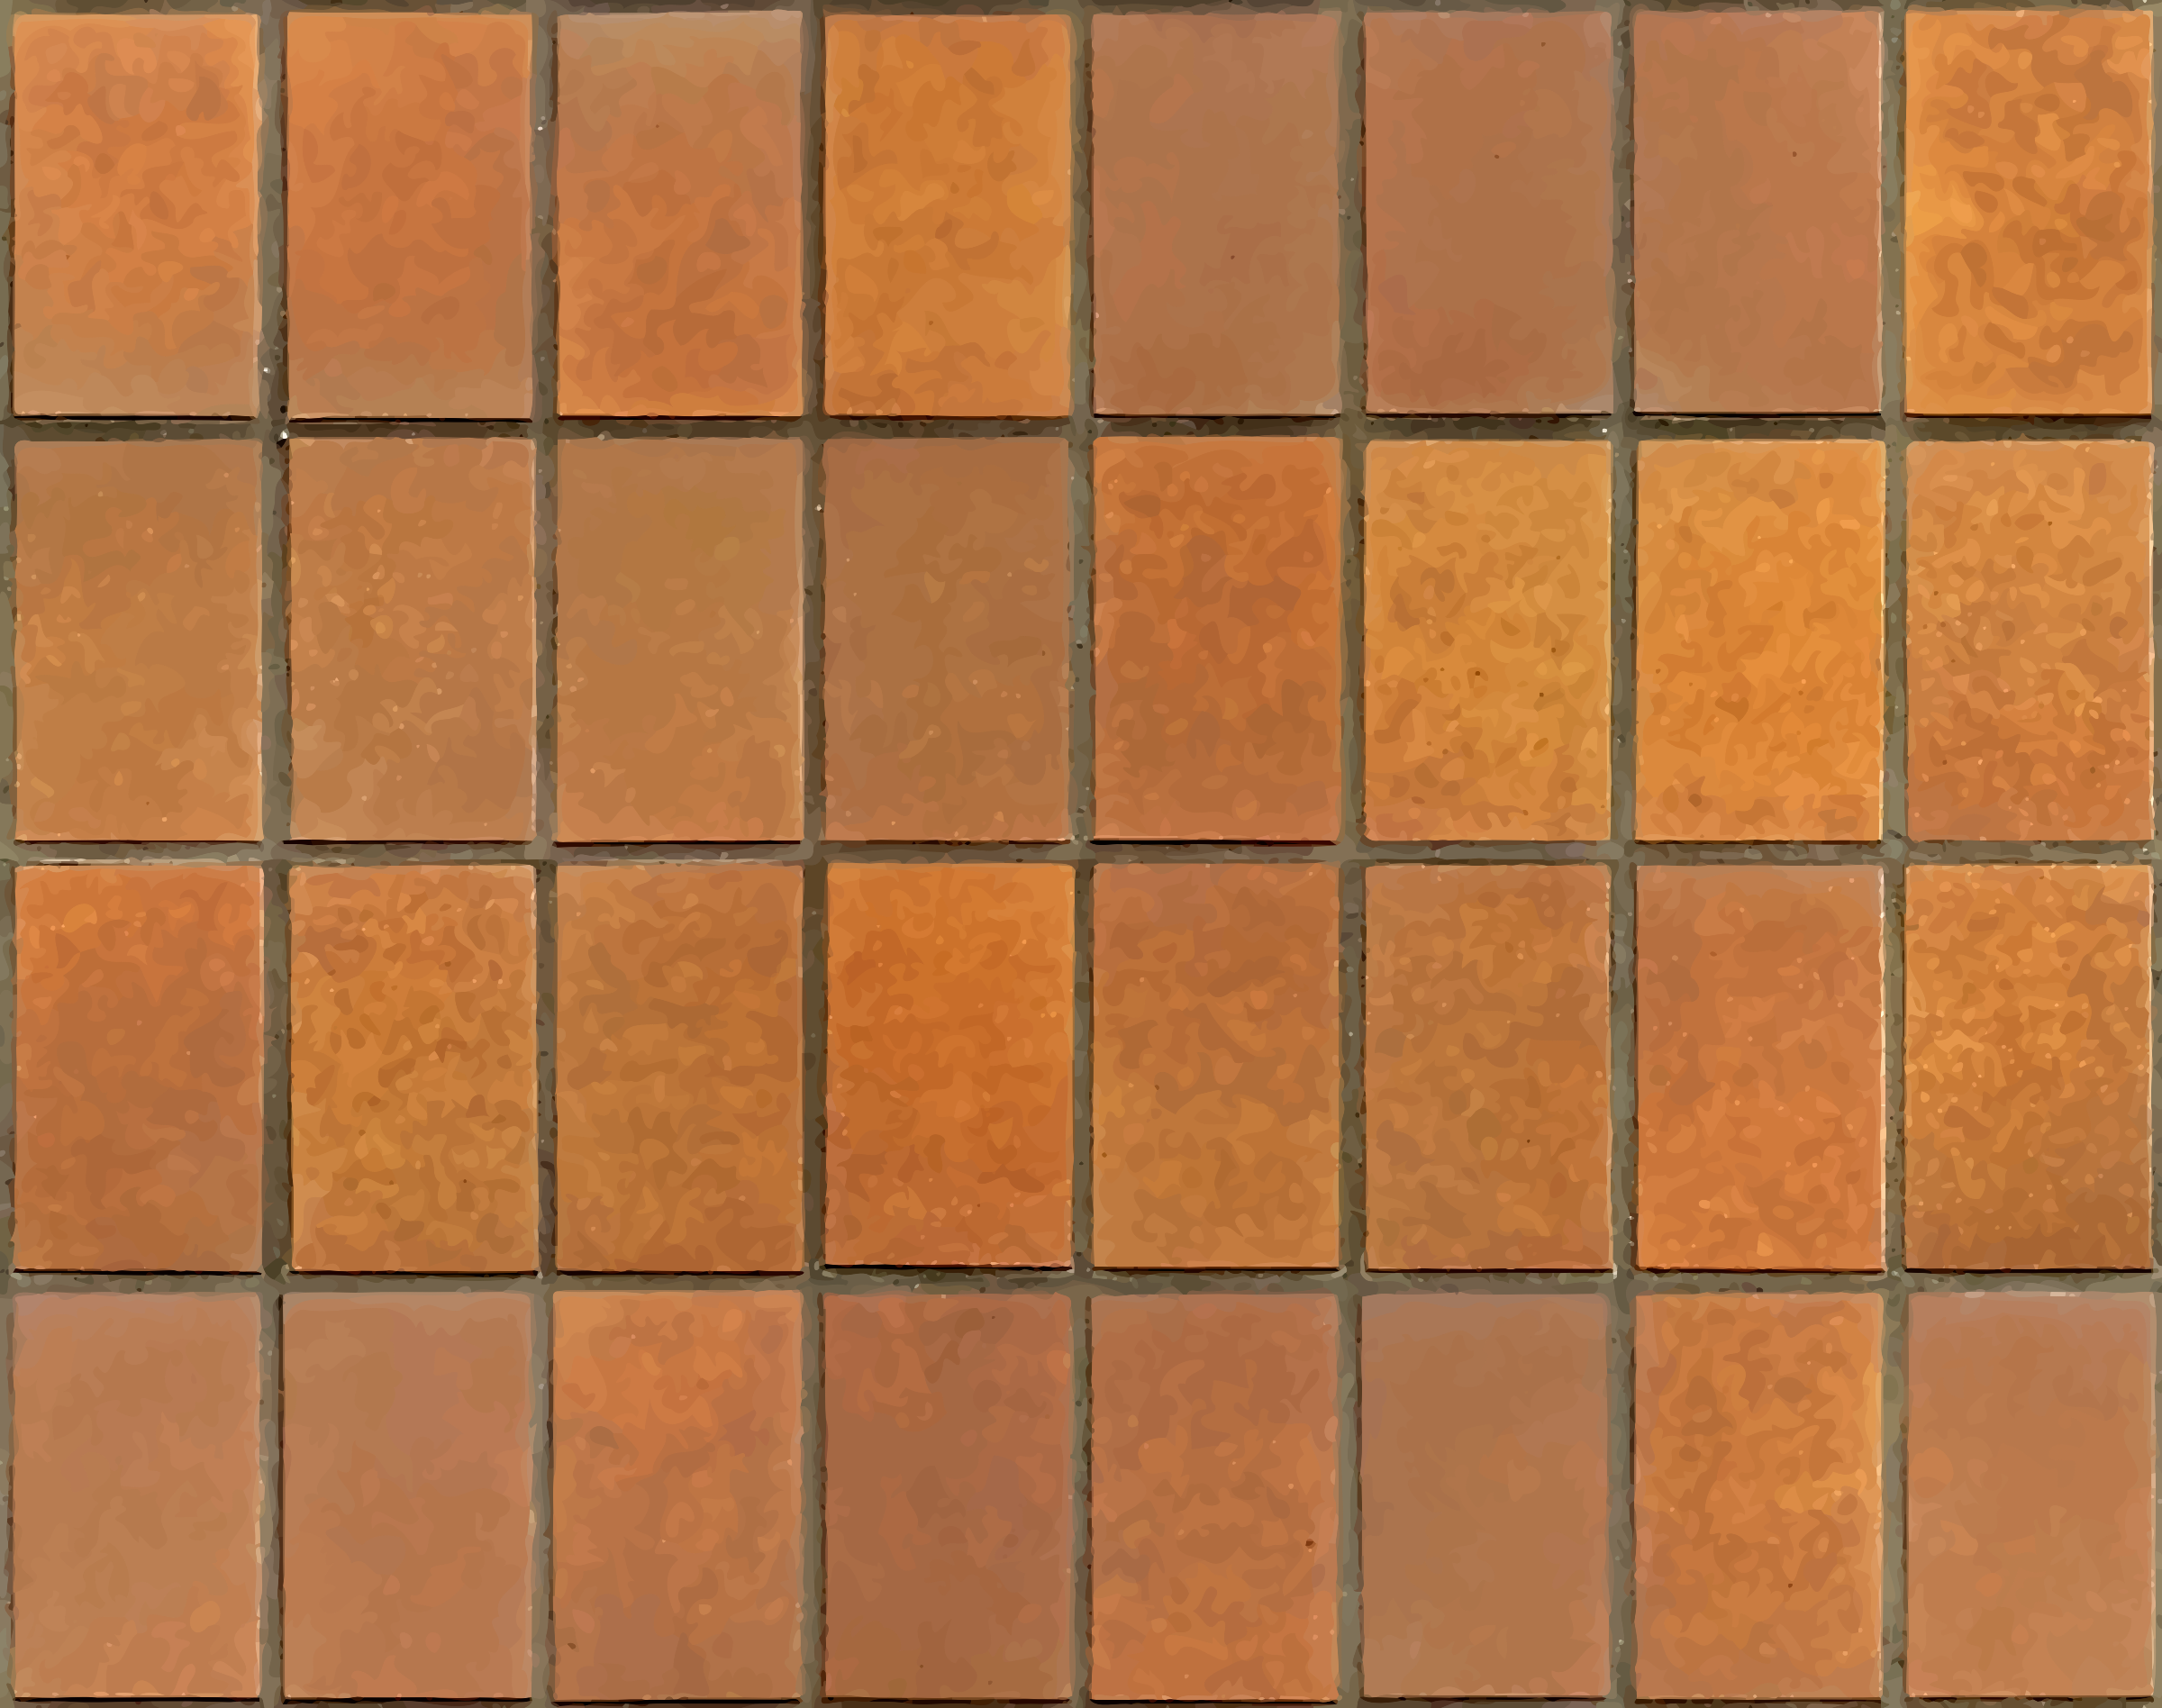 Brown tiles by Firkin